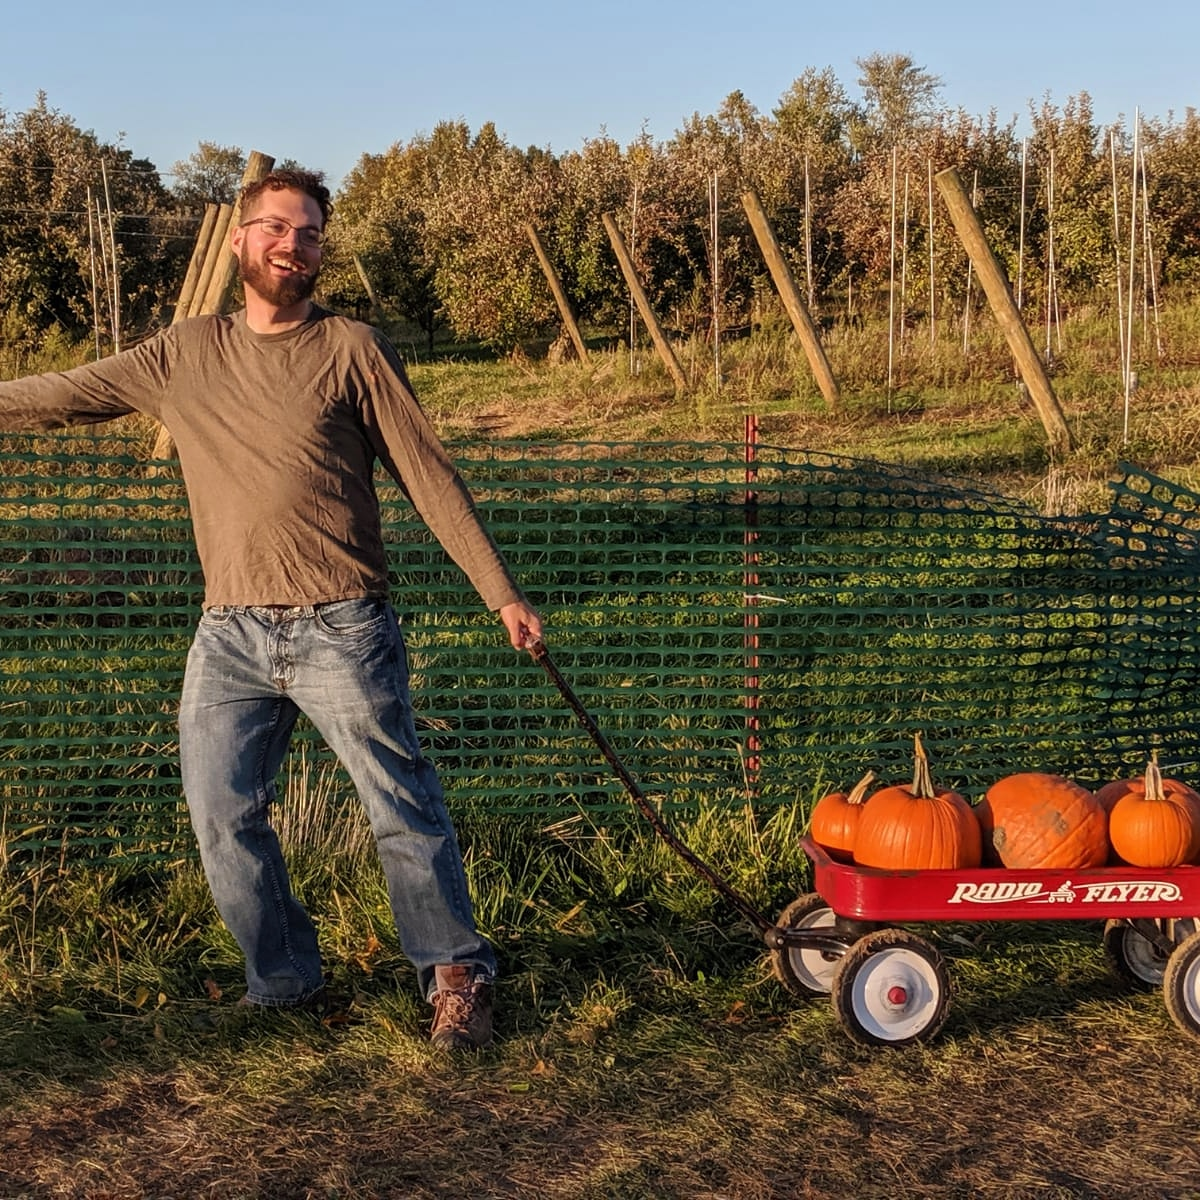 Me hauling a wagon full of pumpkins